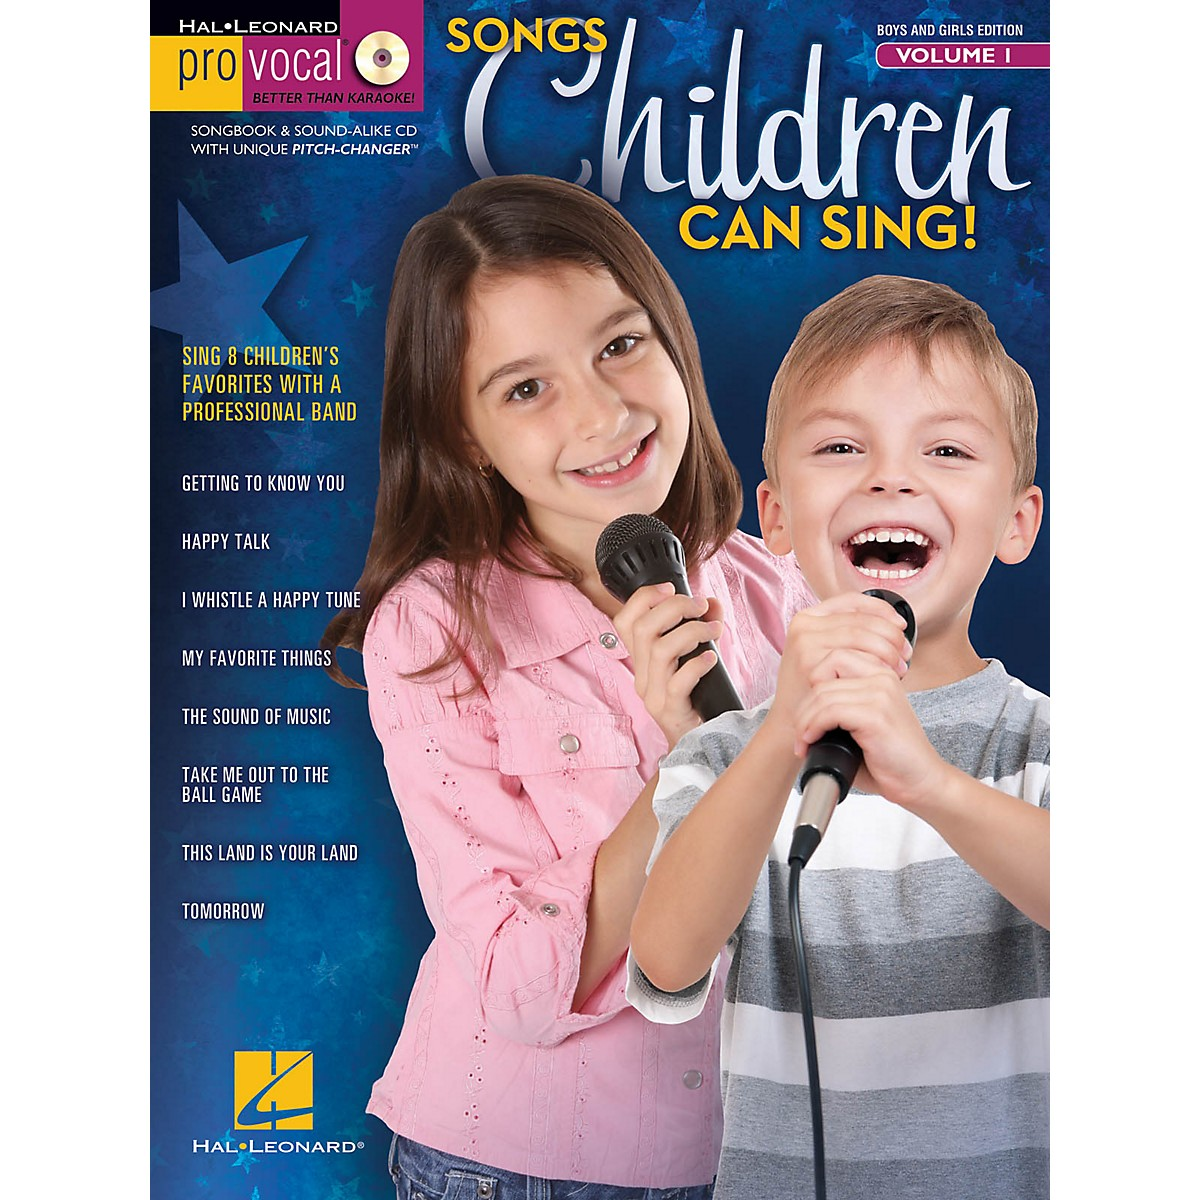 Hal Leonard Songs Children Can Sing! - Pro Vocal For Kids Vol. 1 (For Boys And Girls) Book/CD